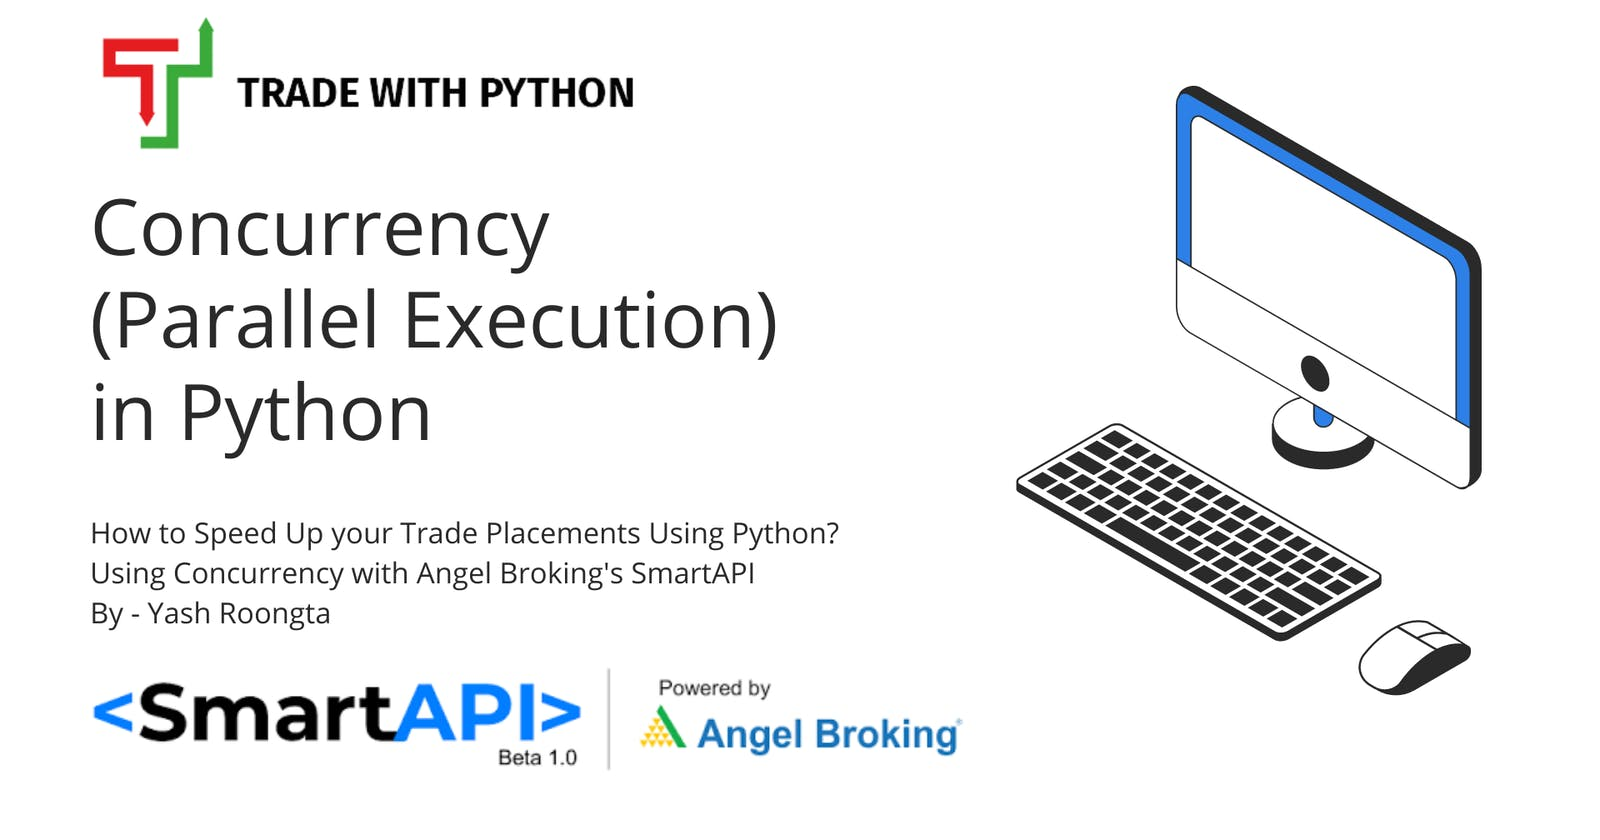 How to Speed Up Your Trades Execution using Python?